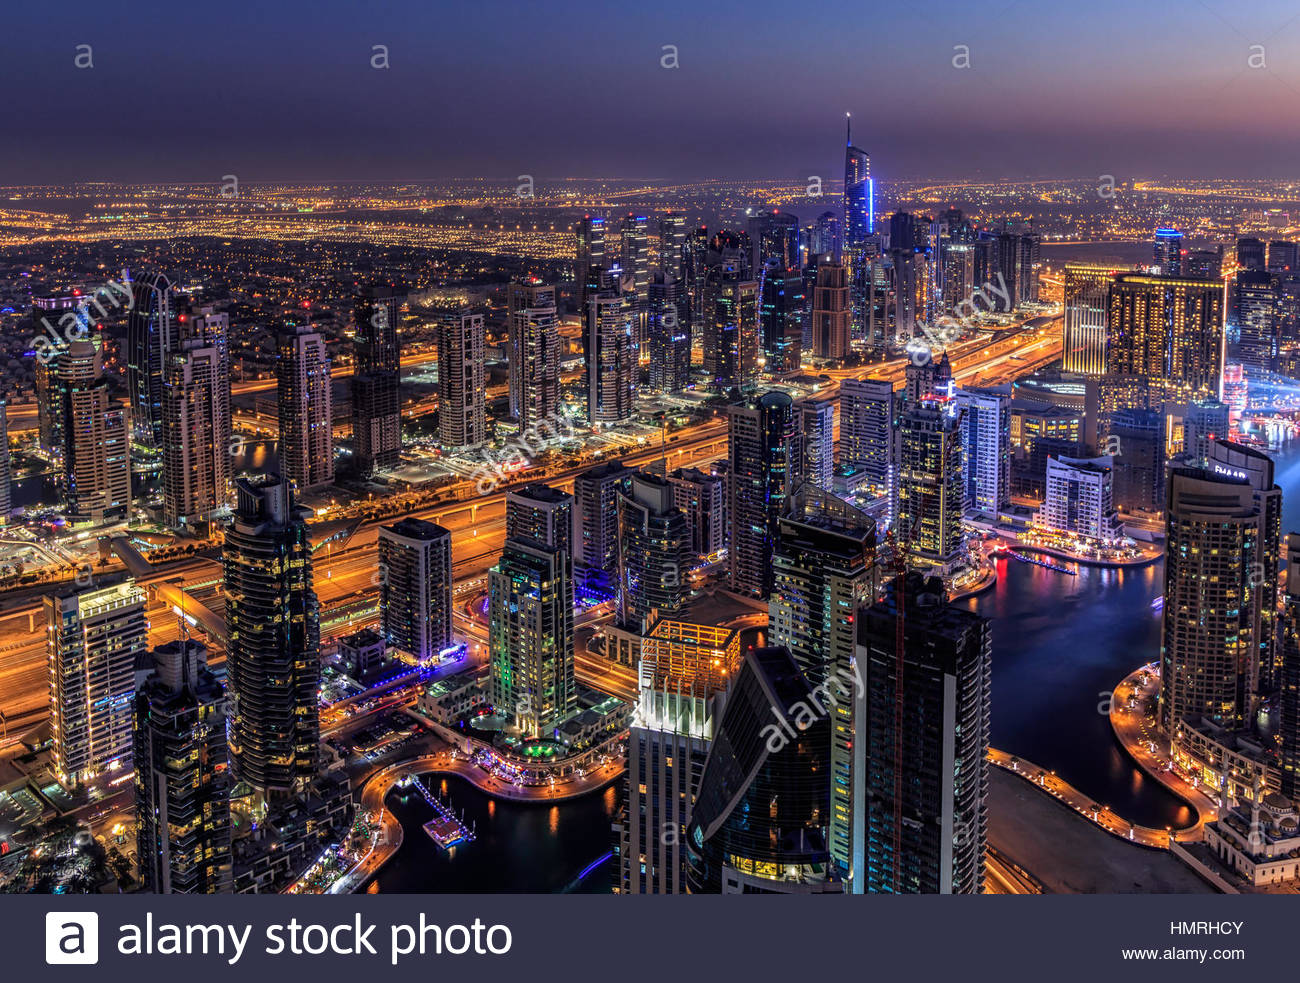 A view of Dubai Marina at night from the rooftop of Cayan Tower - Stock Image